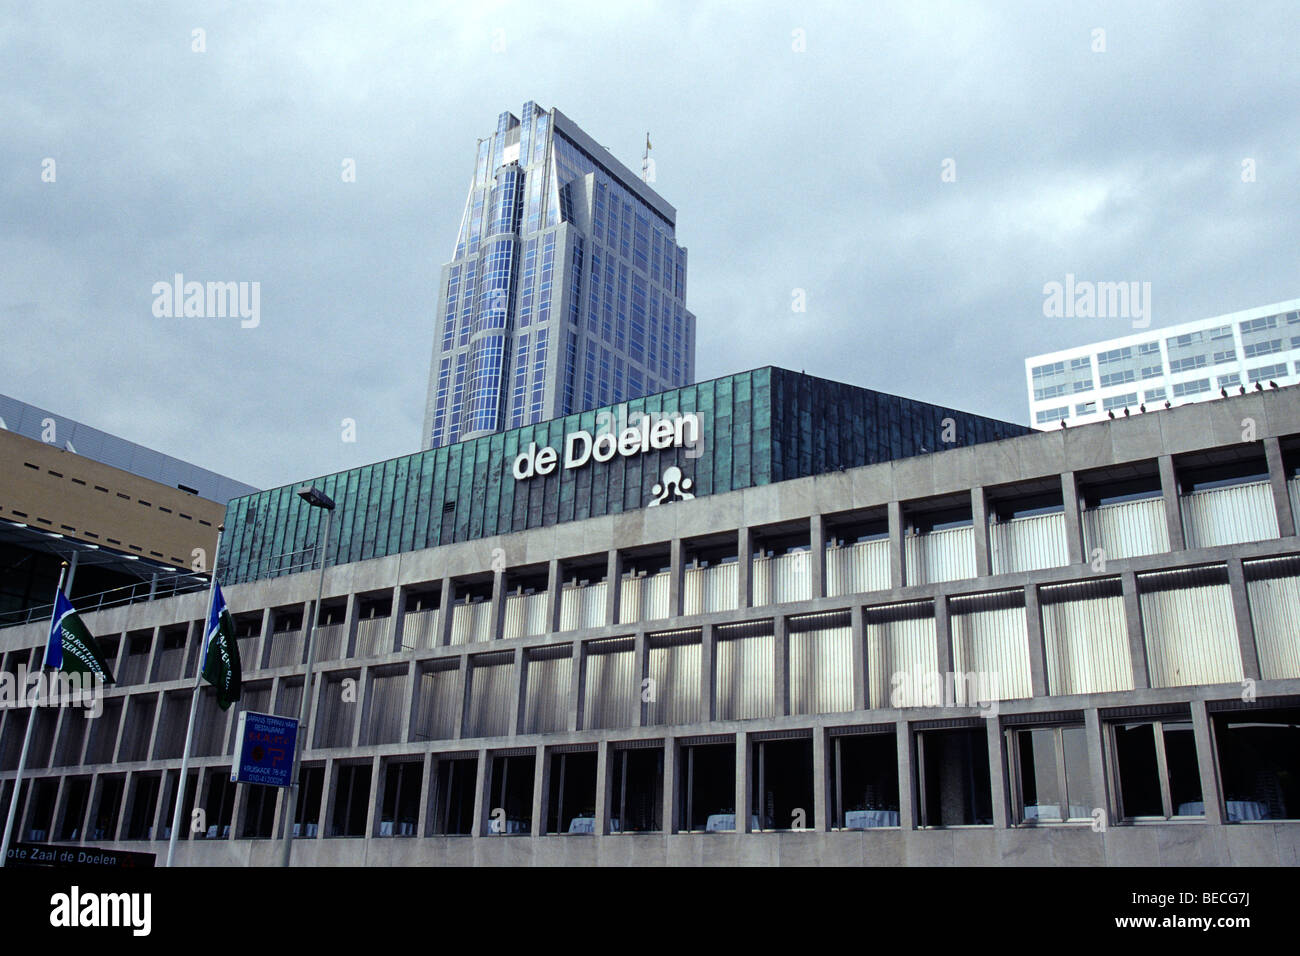 Modern architectur in the city centre, De Doelen, congress and philharmonic hall, The Westin Hotel in the Millenium - Stock Image